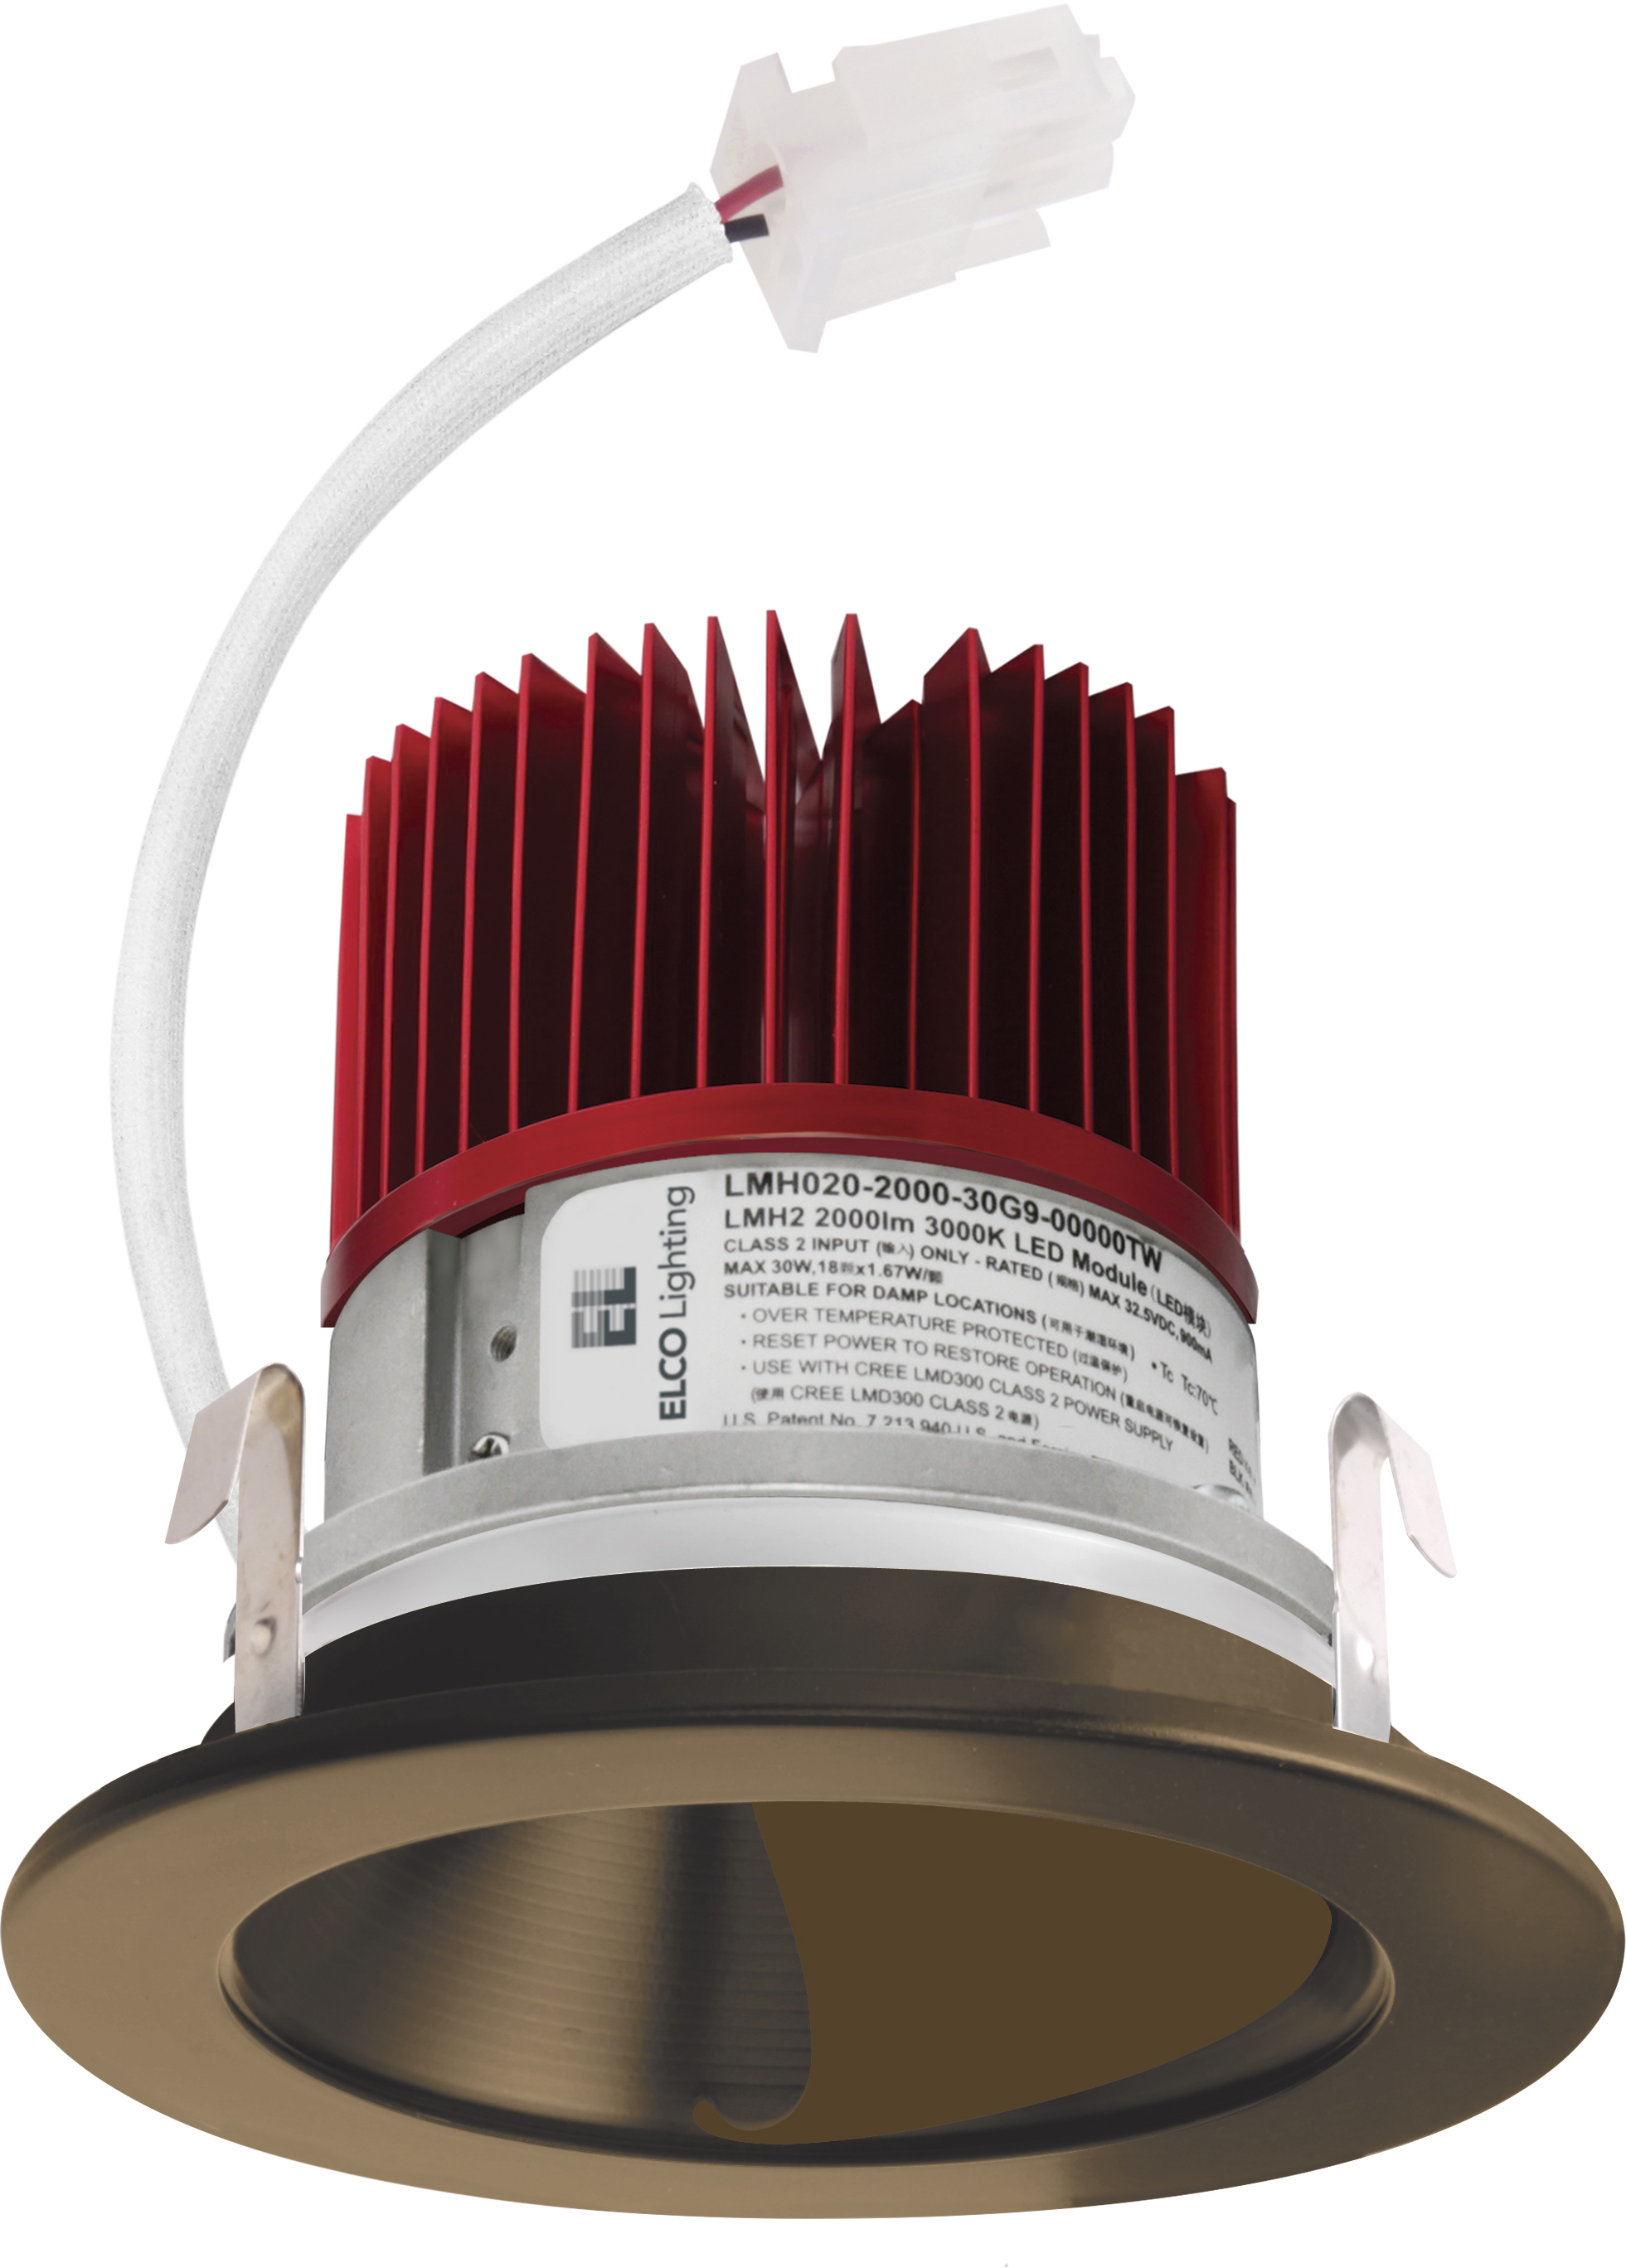 4 Quot Led Light Engine With Wall Wash Reflector Trim Elco